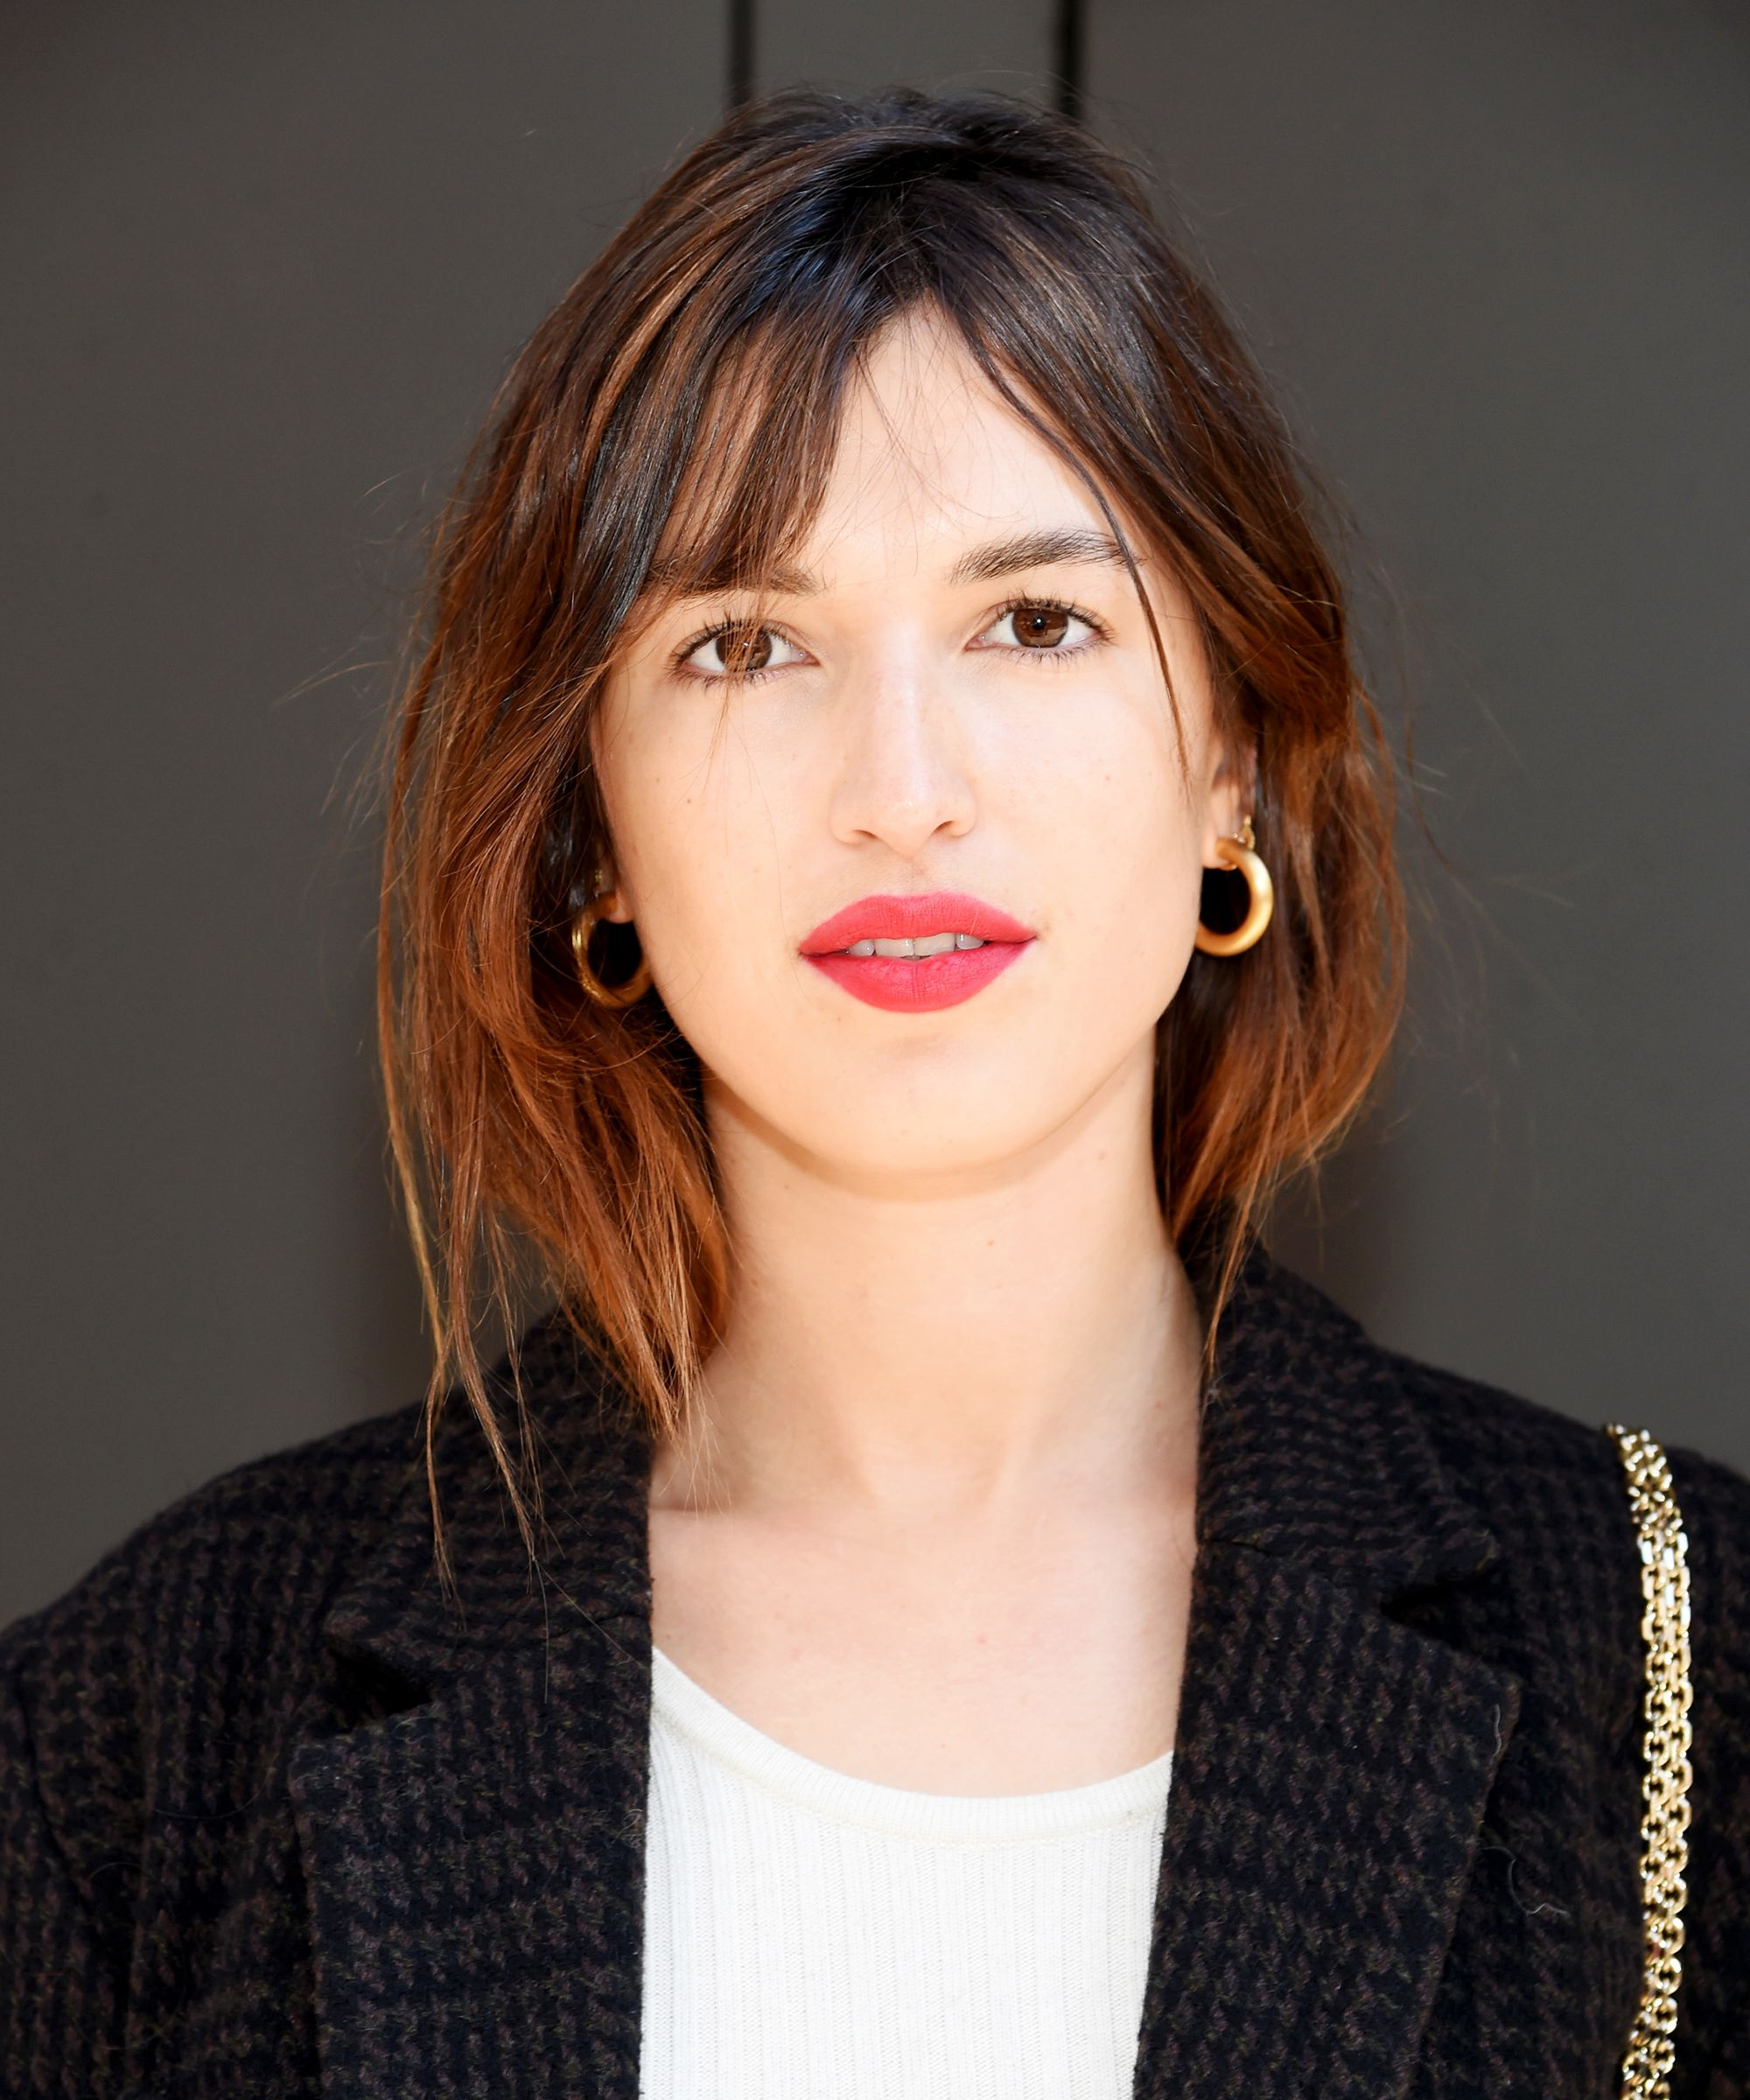 2018 Popular International Hair Trends Haircuts Photos Within Edgy Short Haircuts For Round Faces (View 20 of 25)